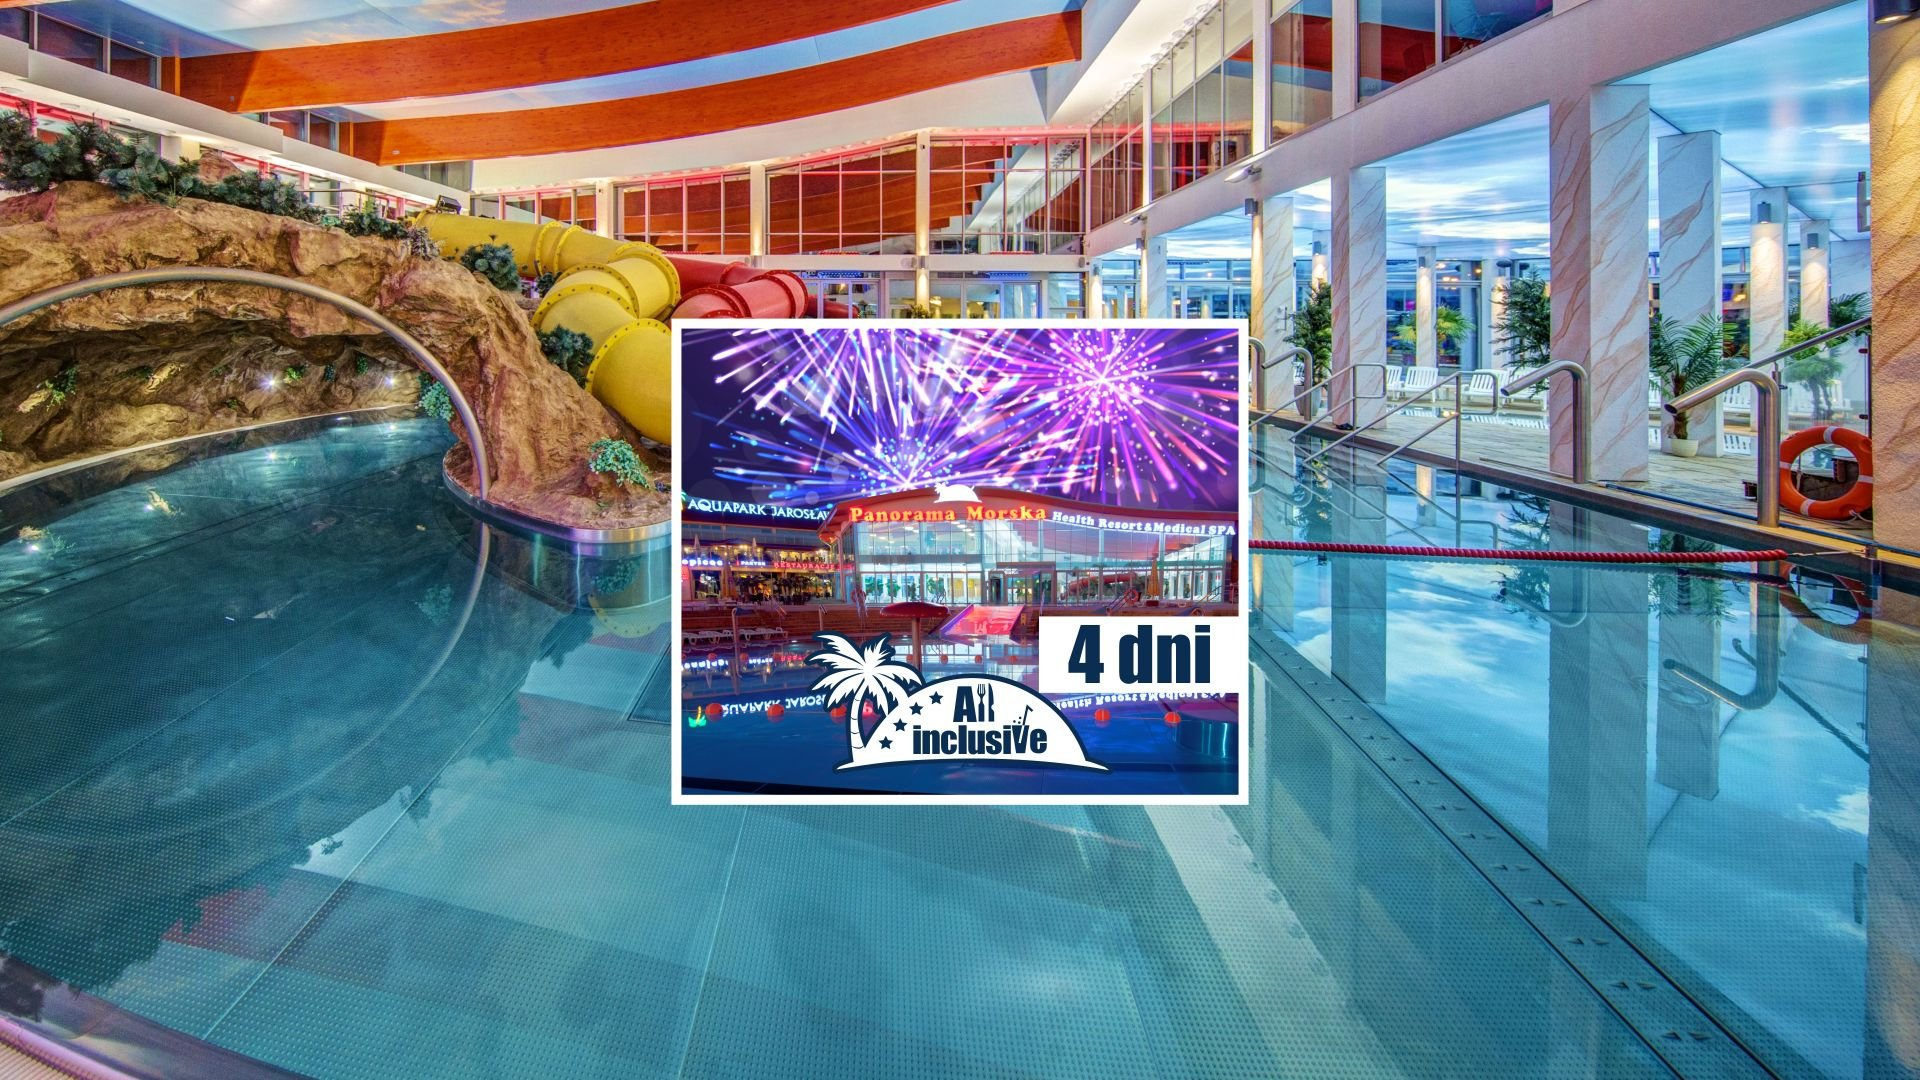 Silvesteraufenthalt 2019/2020 All inclusive - 4 Tage